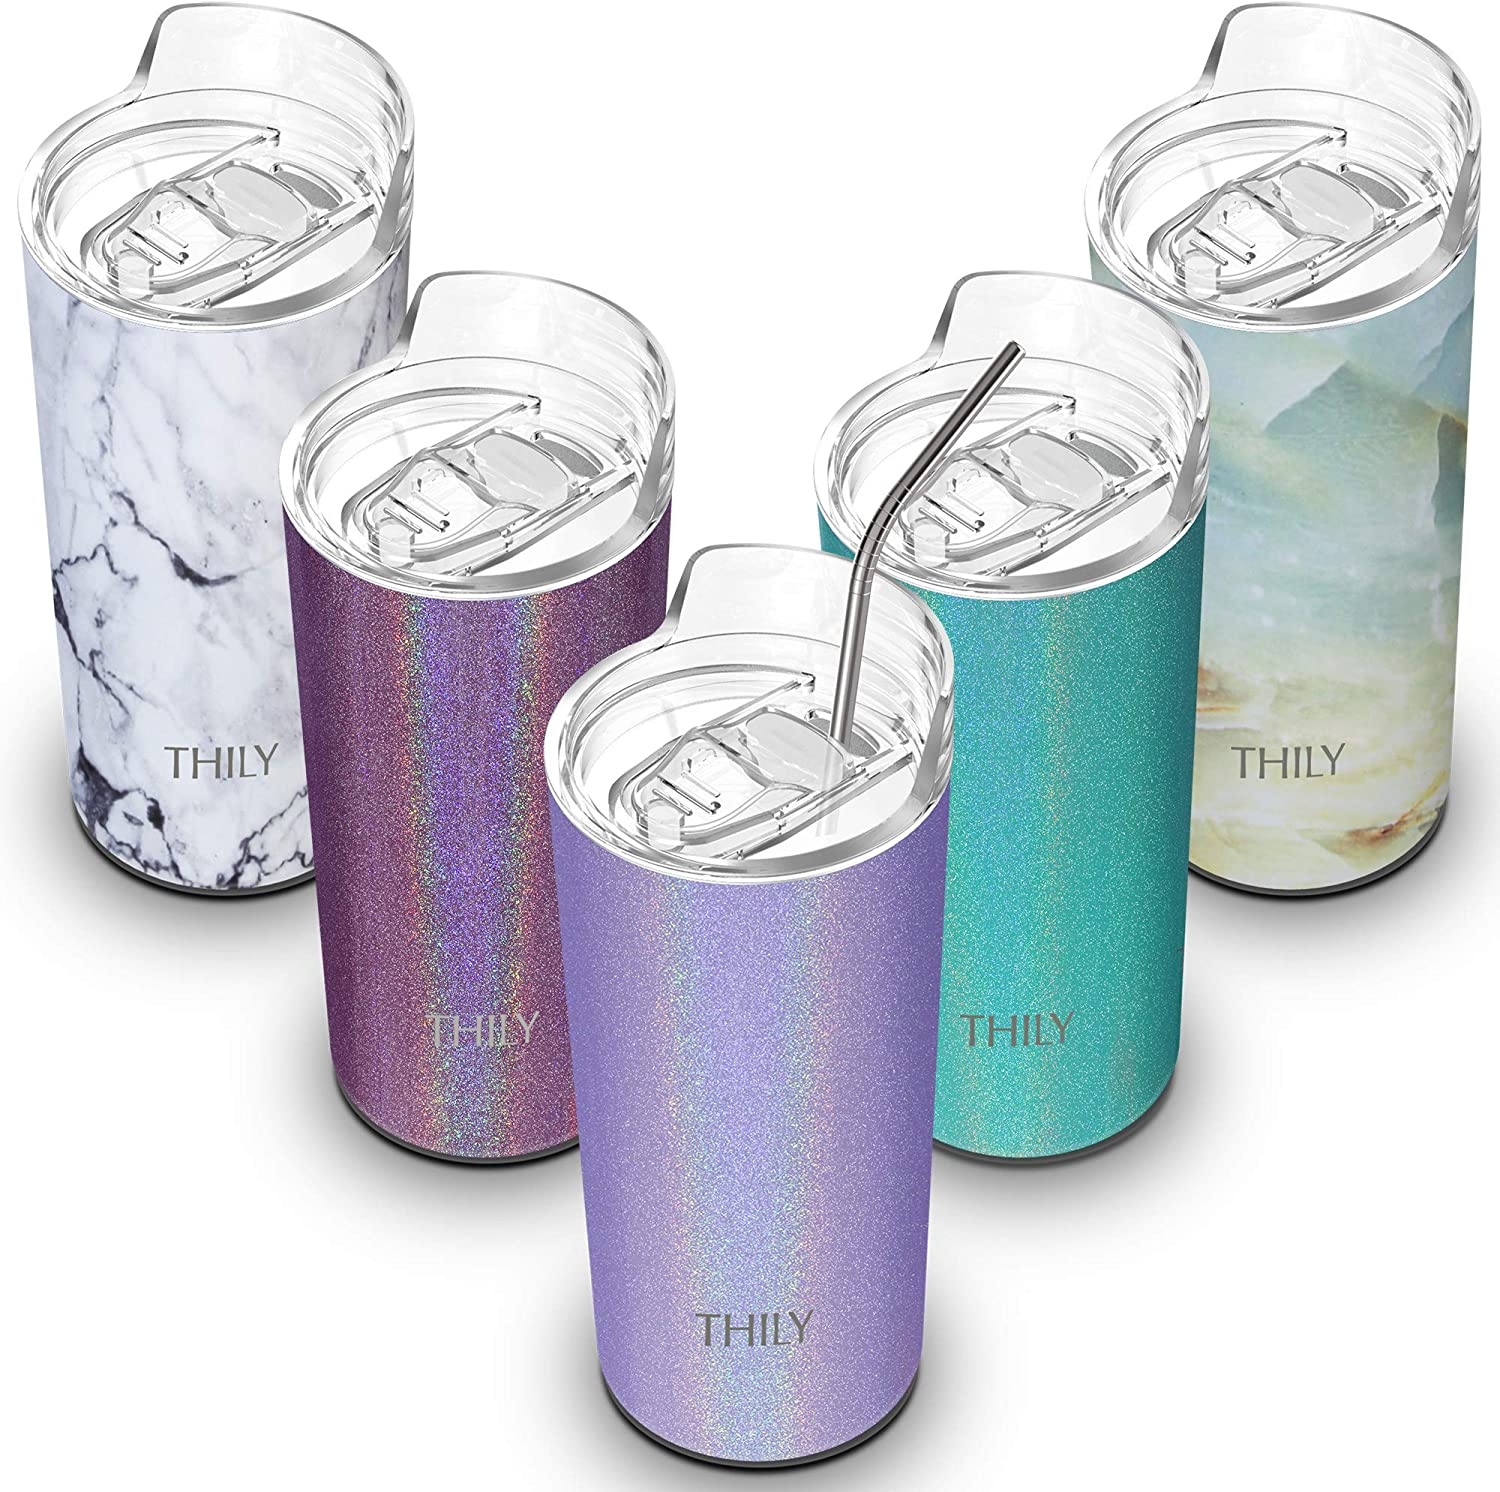 Stainless Steel Insulated Skinny Tumbler - THILY 16 oz Travel Mug with Lid and Straw, Keep Cold for Ice Water, Coffee, Juice, Drinks, Glitter Lavender